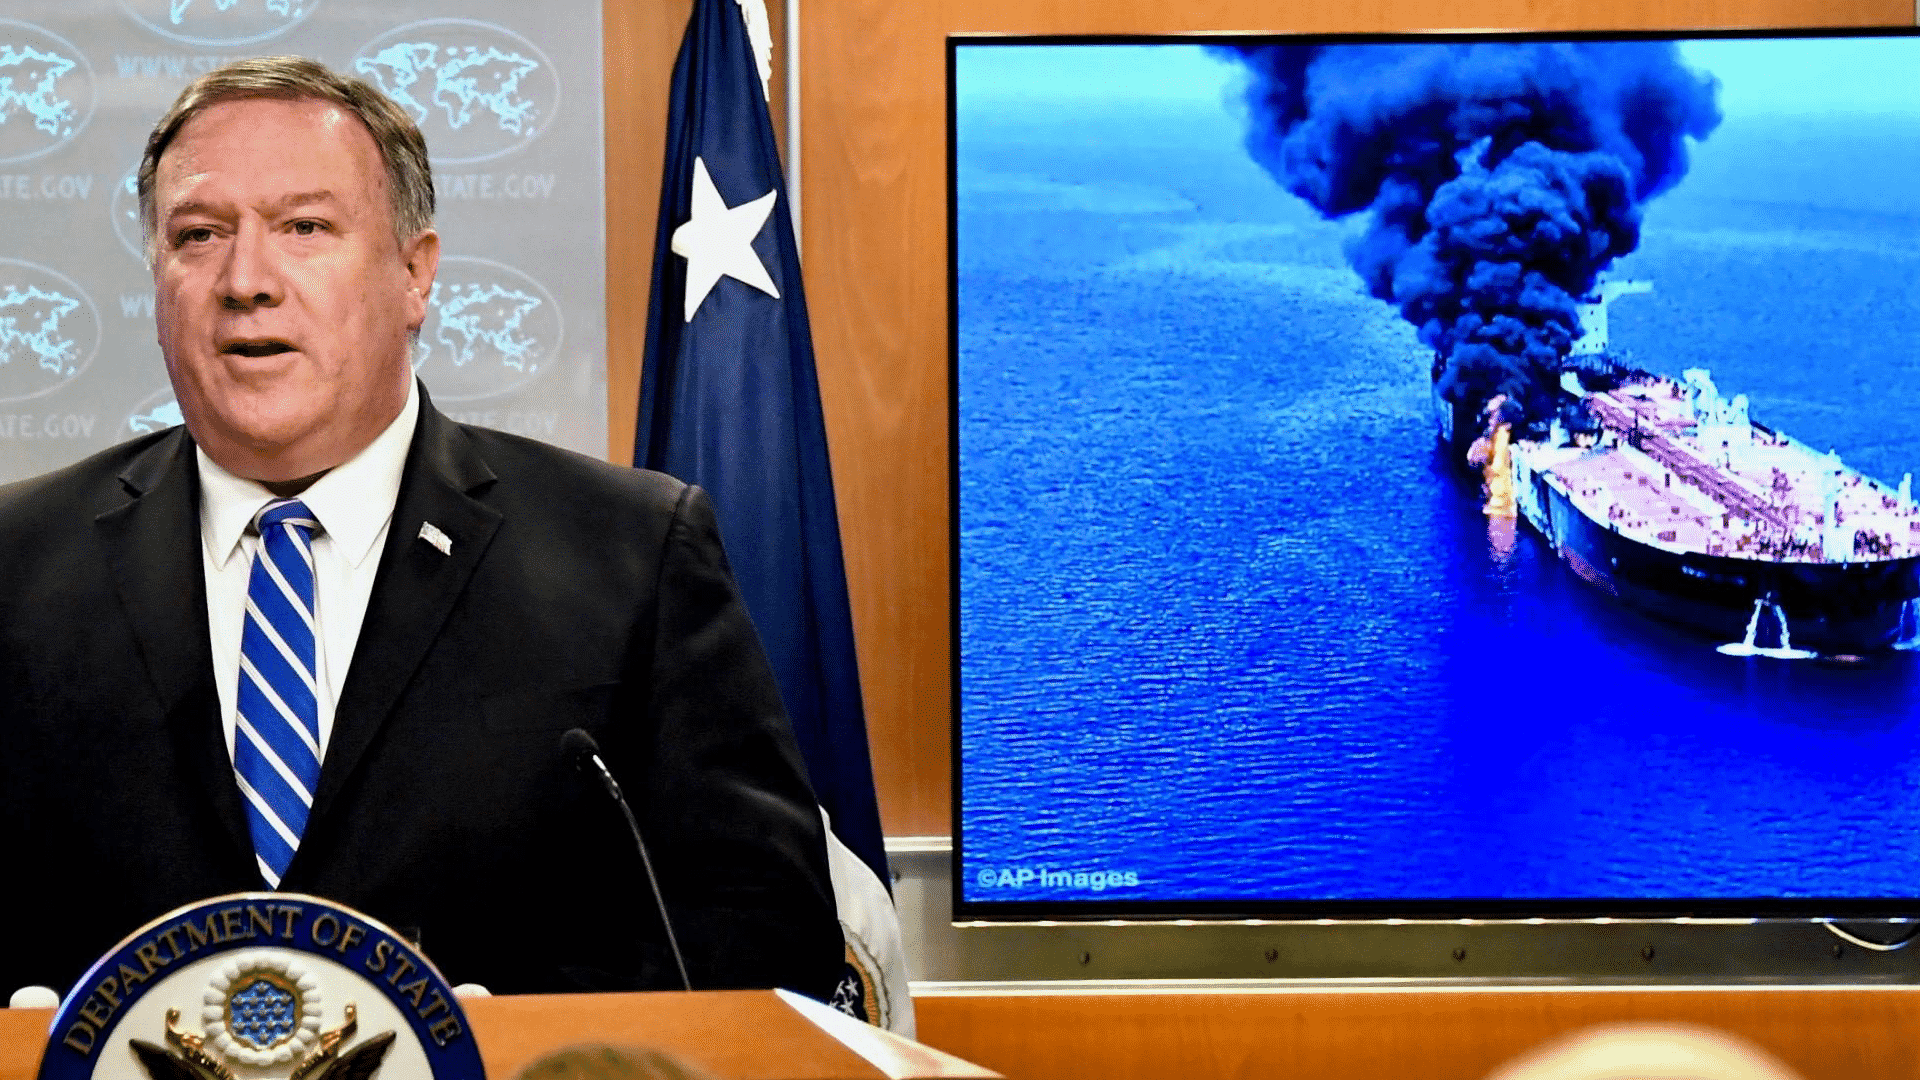 Mike Pompeo makes statement on Japanese oil tanker attack in the Gulf of Oman